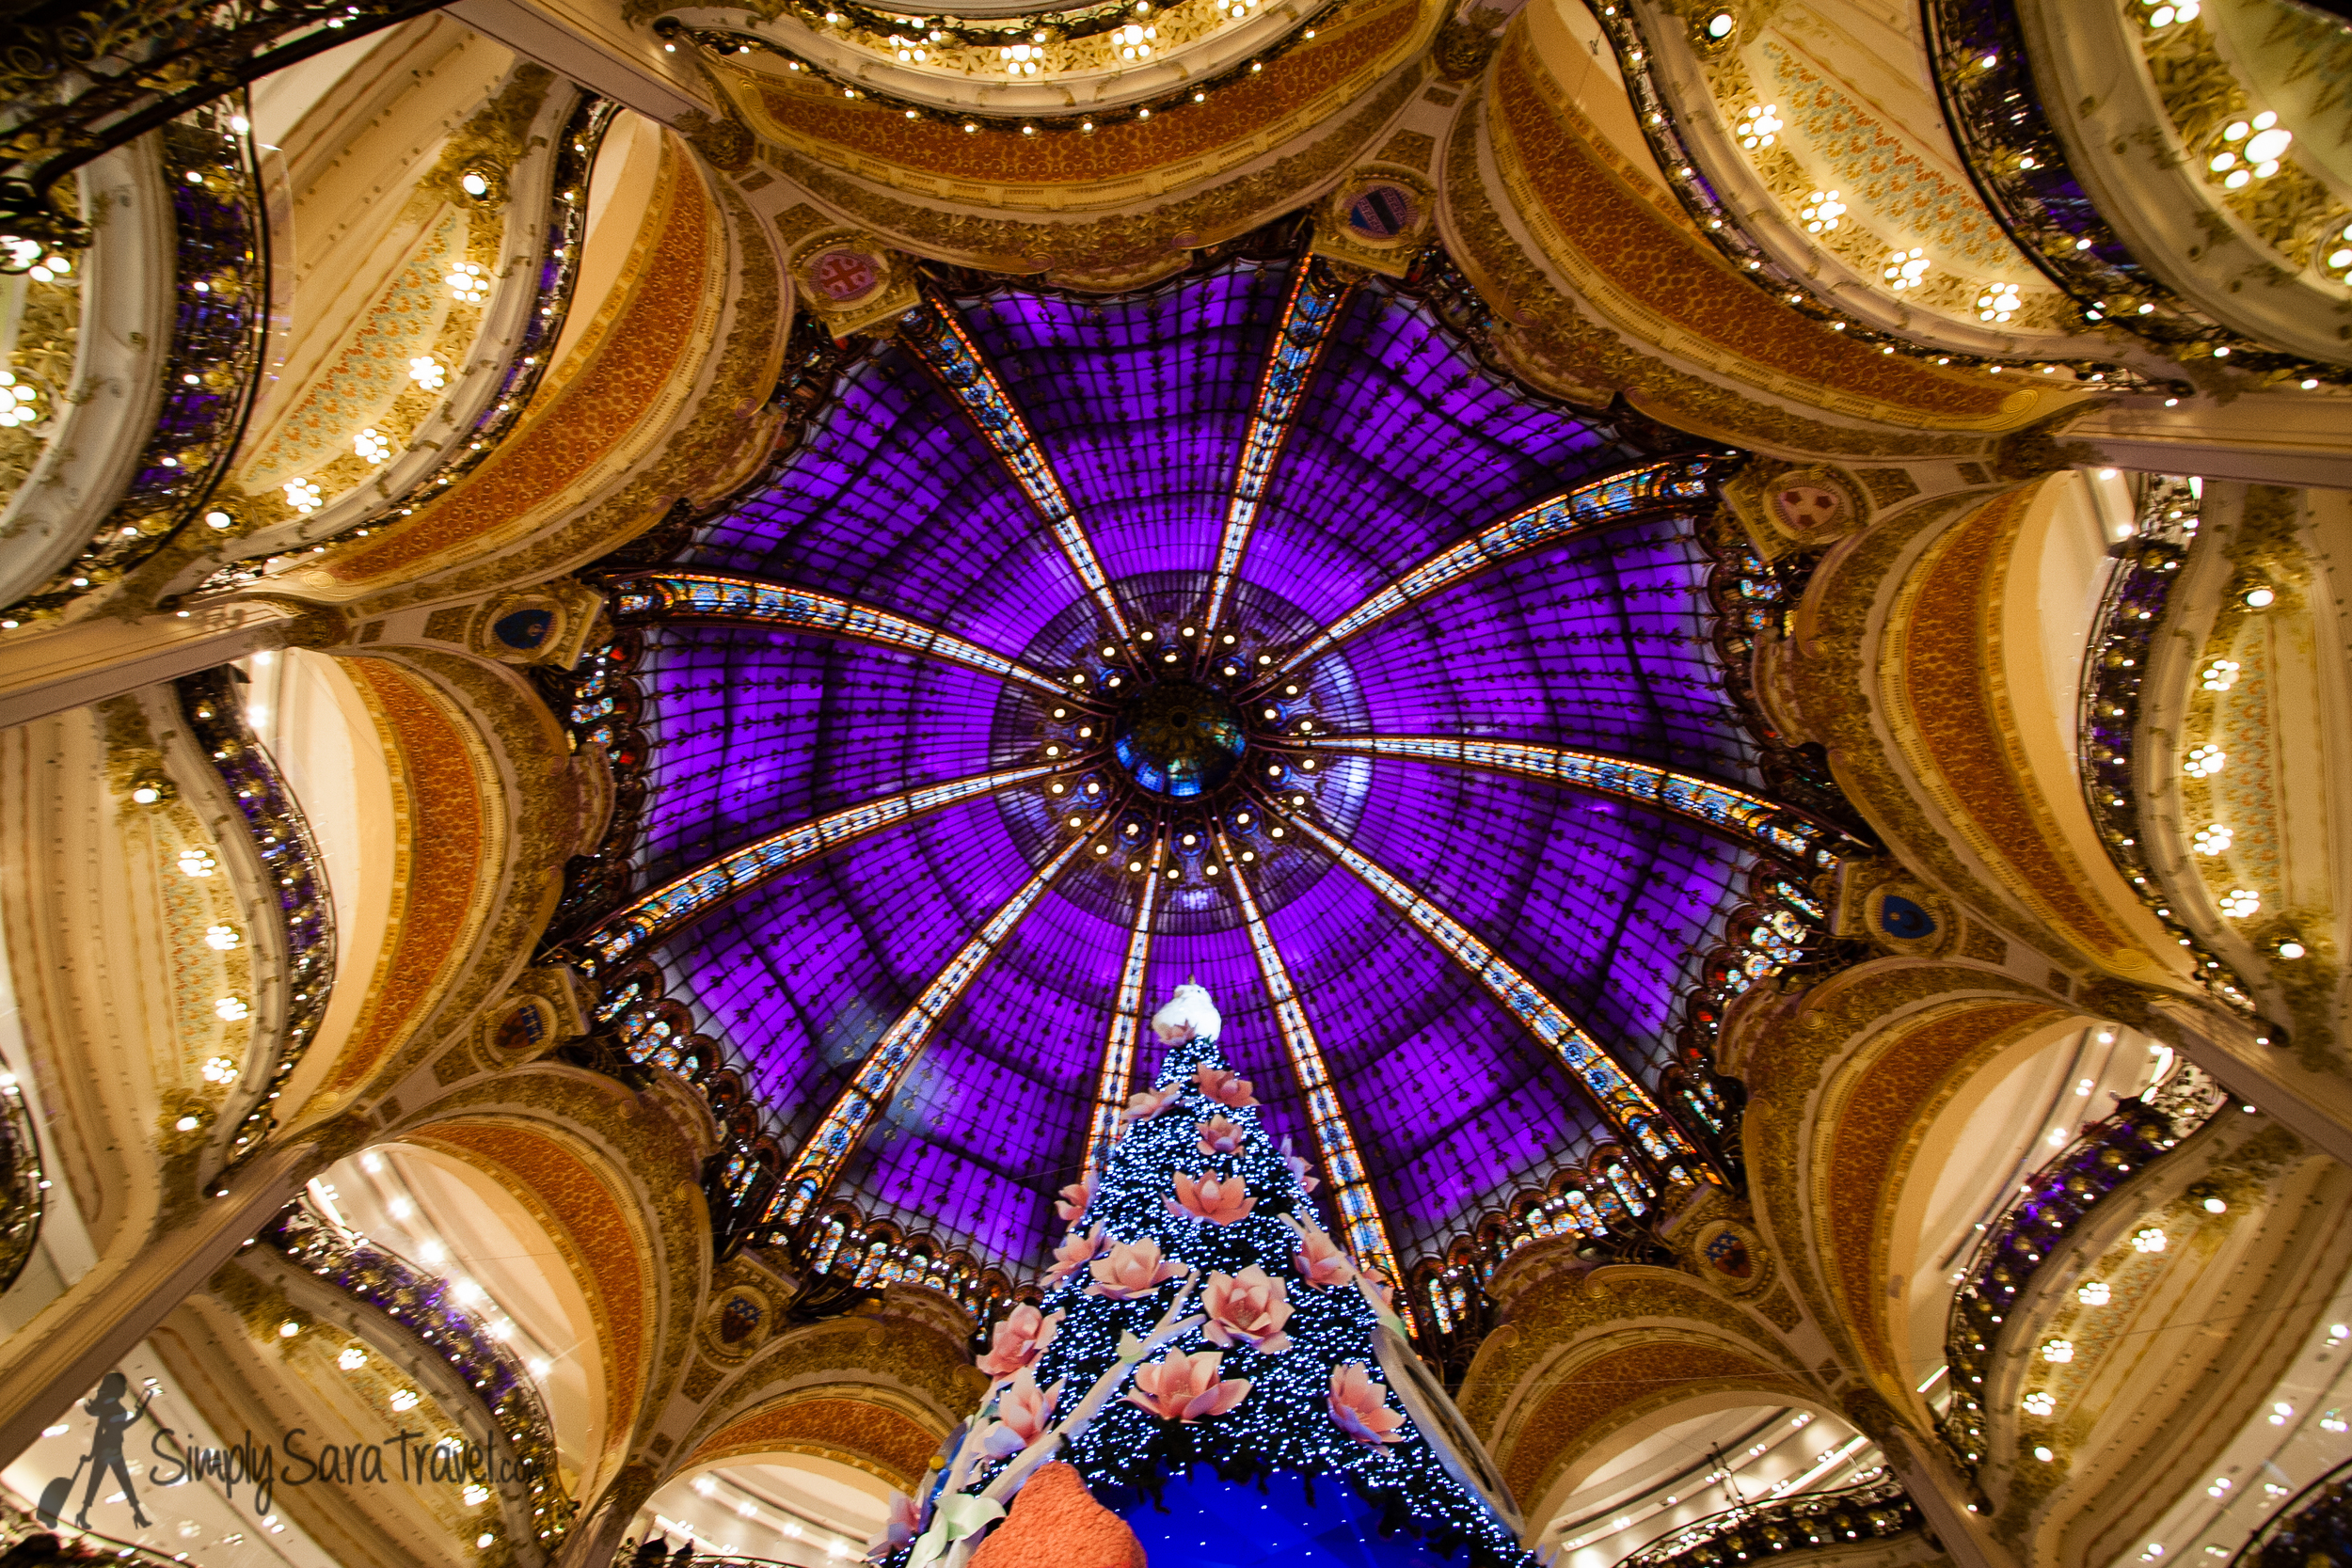 The  65-foot tall Christmas tree  in the middle of Galaries Lafayette